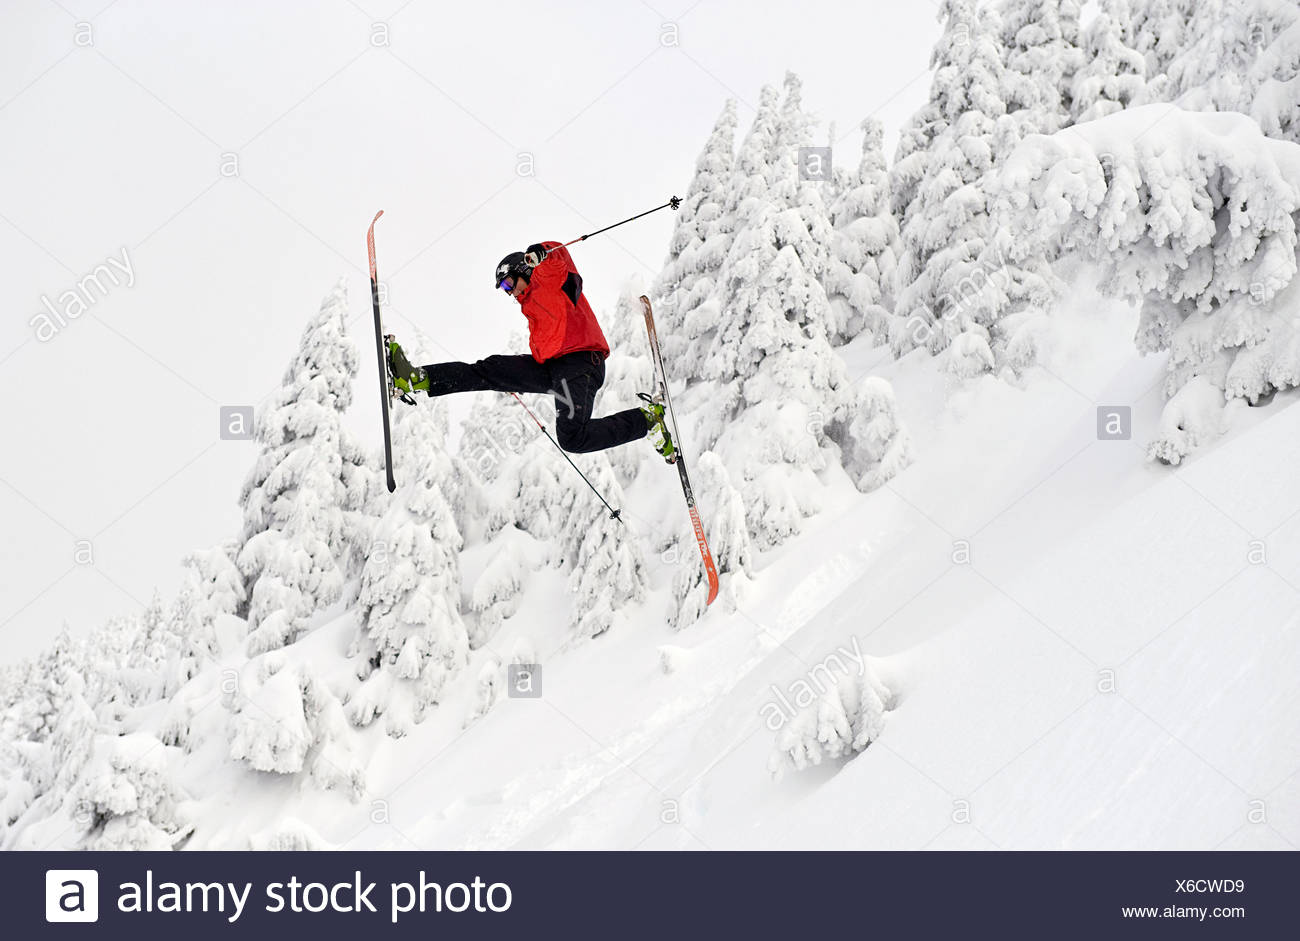 A skier performs a 'daffy'  off a jump at the Eaglecrest Ski area in Juneau, Alaska - Stock Image